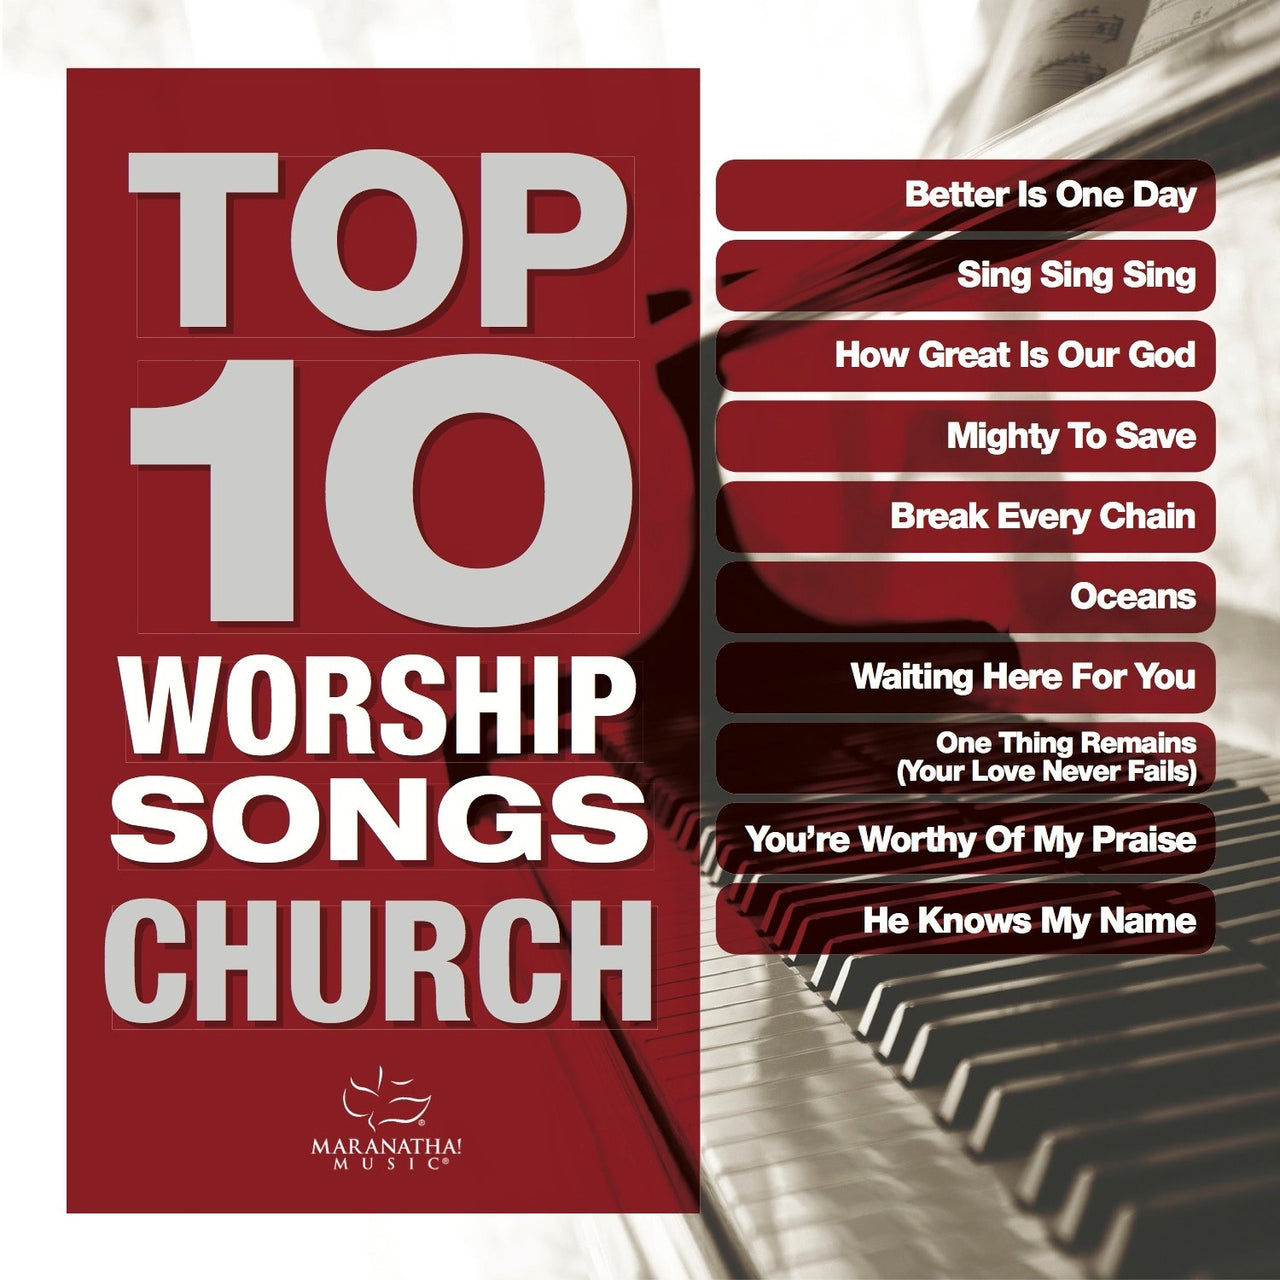 Top 10 Praise Songs: Church